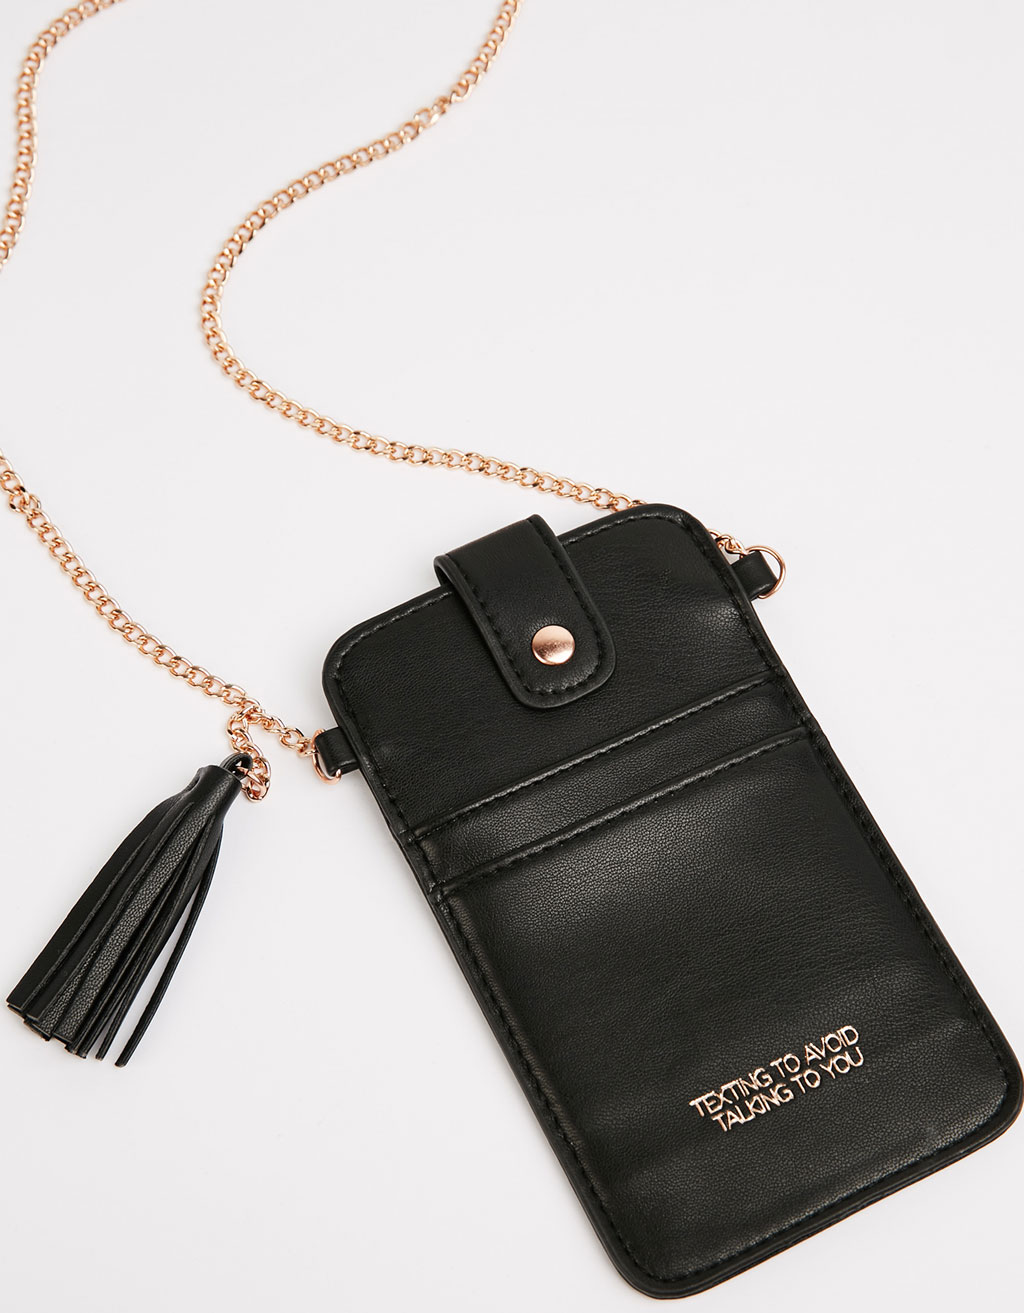 Chain case for mobile phones